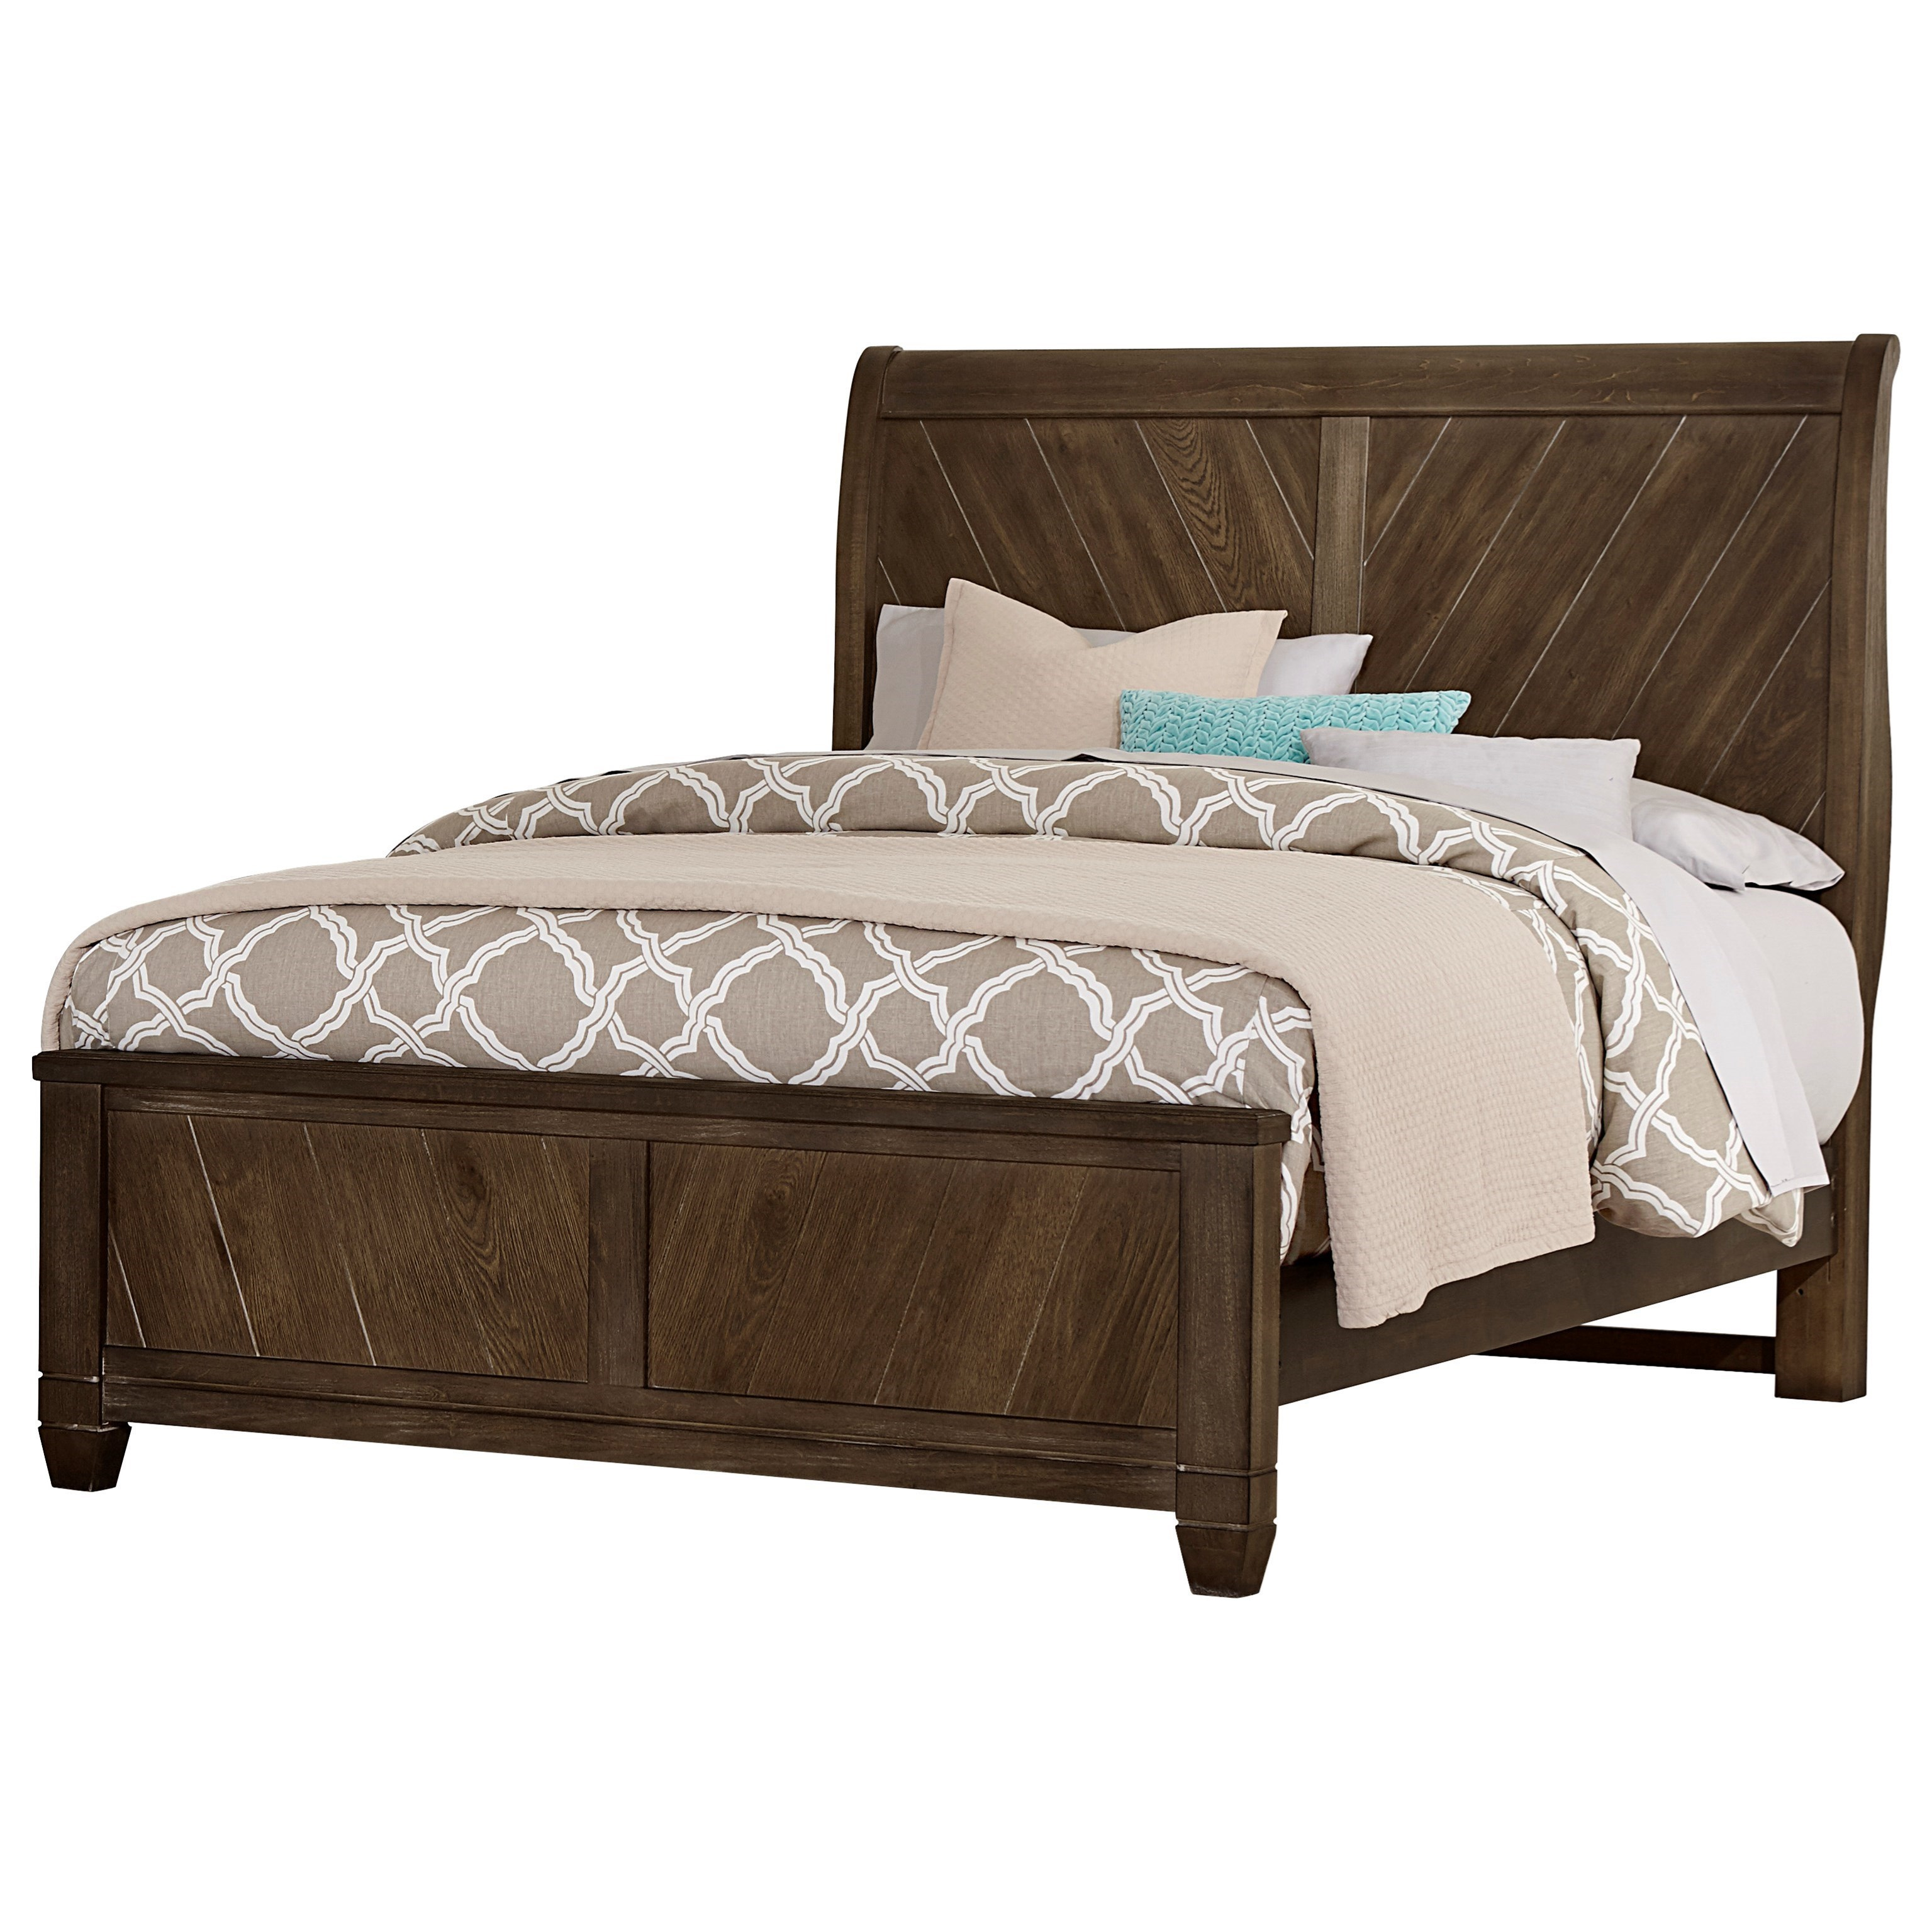 vaughan bassett rustic cottage rustic queen sleigh bed with wine rh olindes com rustic cottage furniture ontario rustic cottage furniture ontario